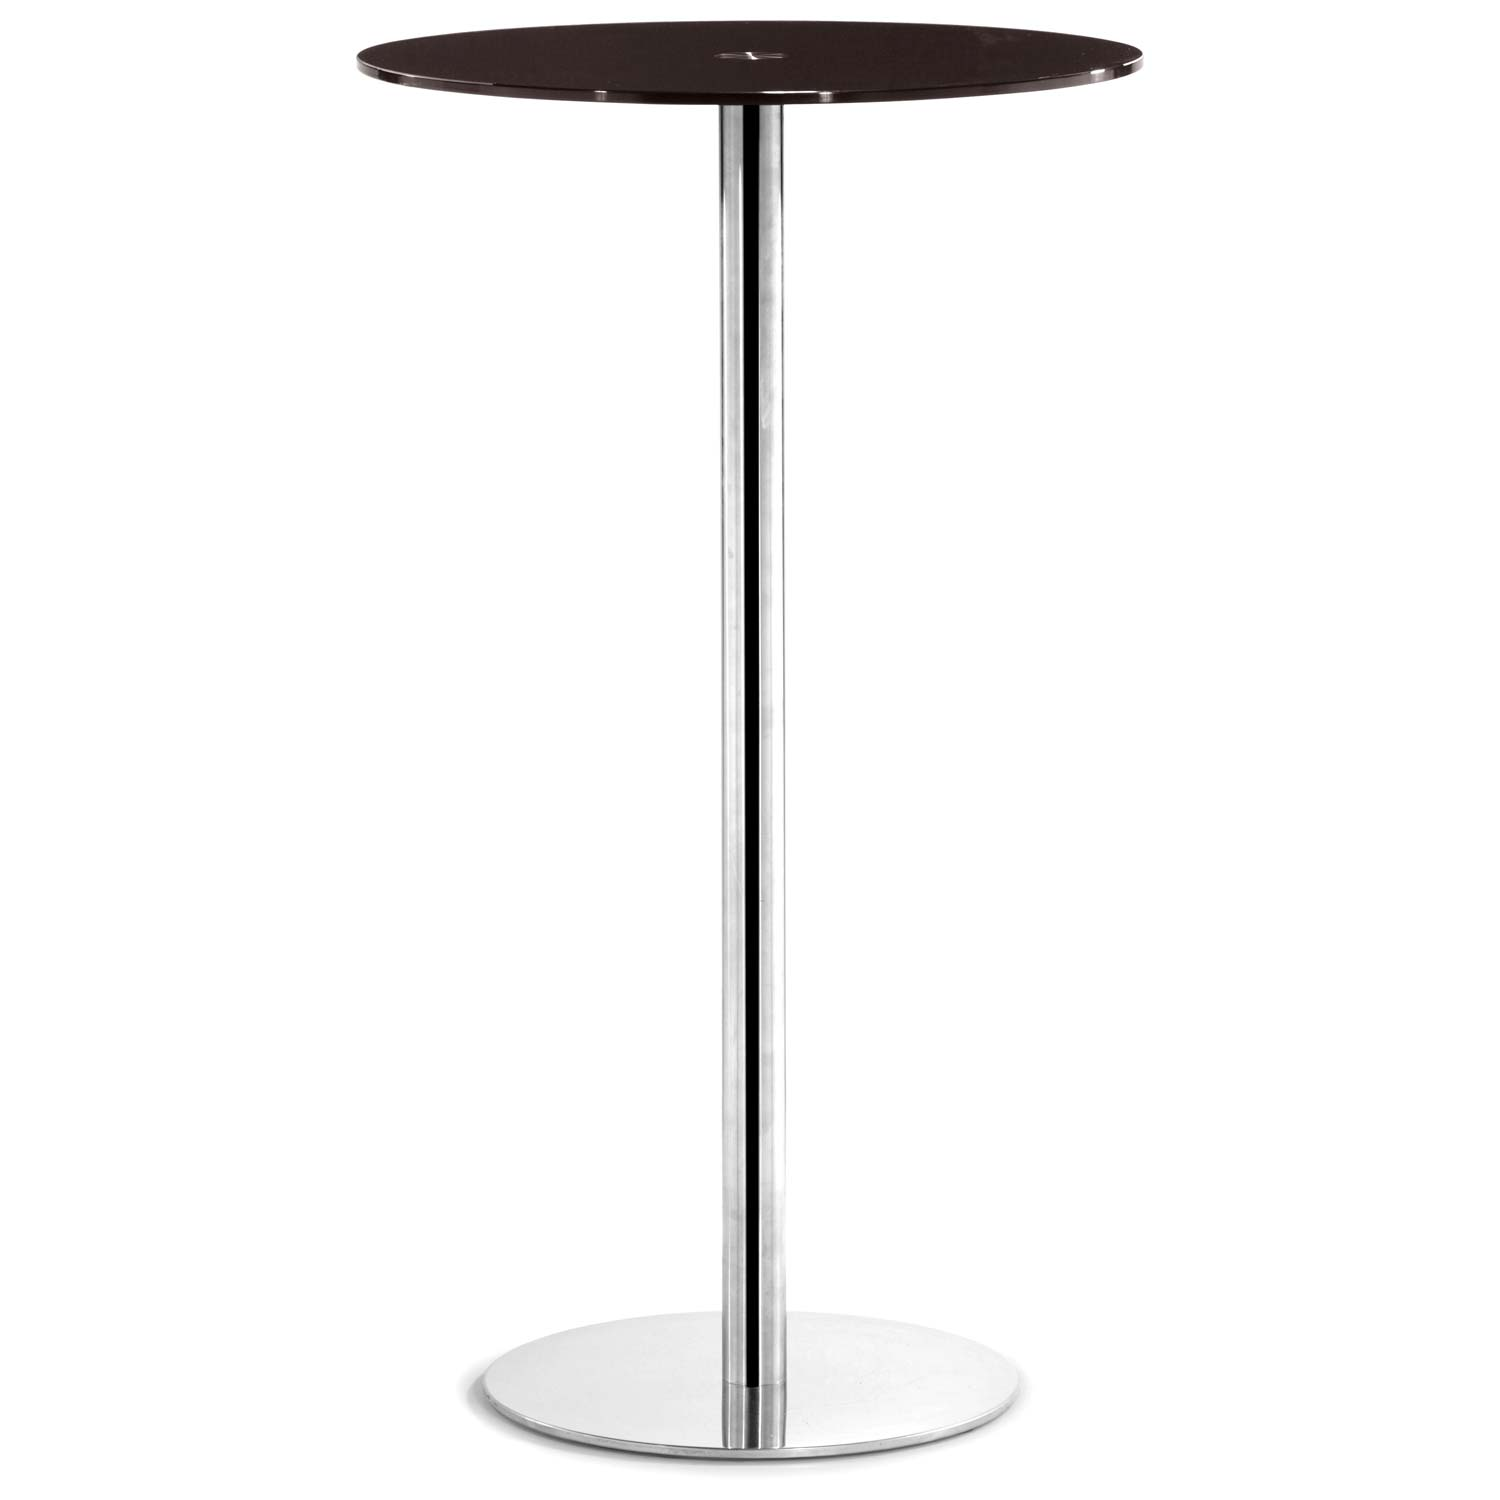 Cyclone Round Bar Table - Chrome Base, Espresso Glass